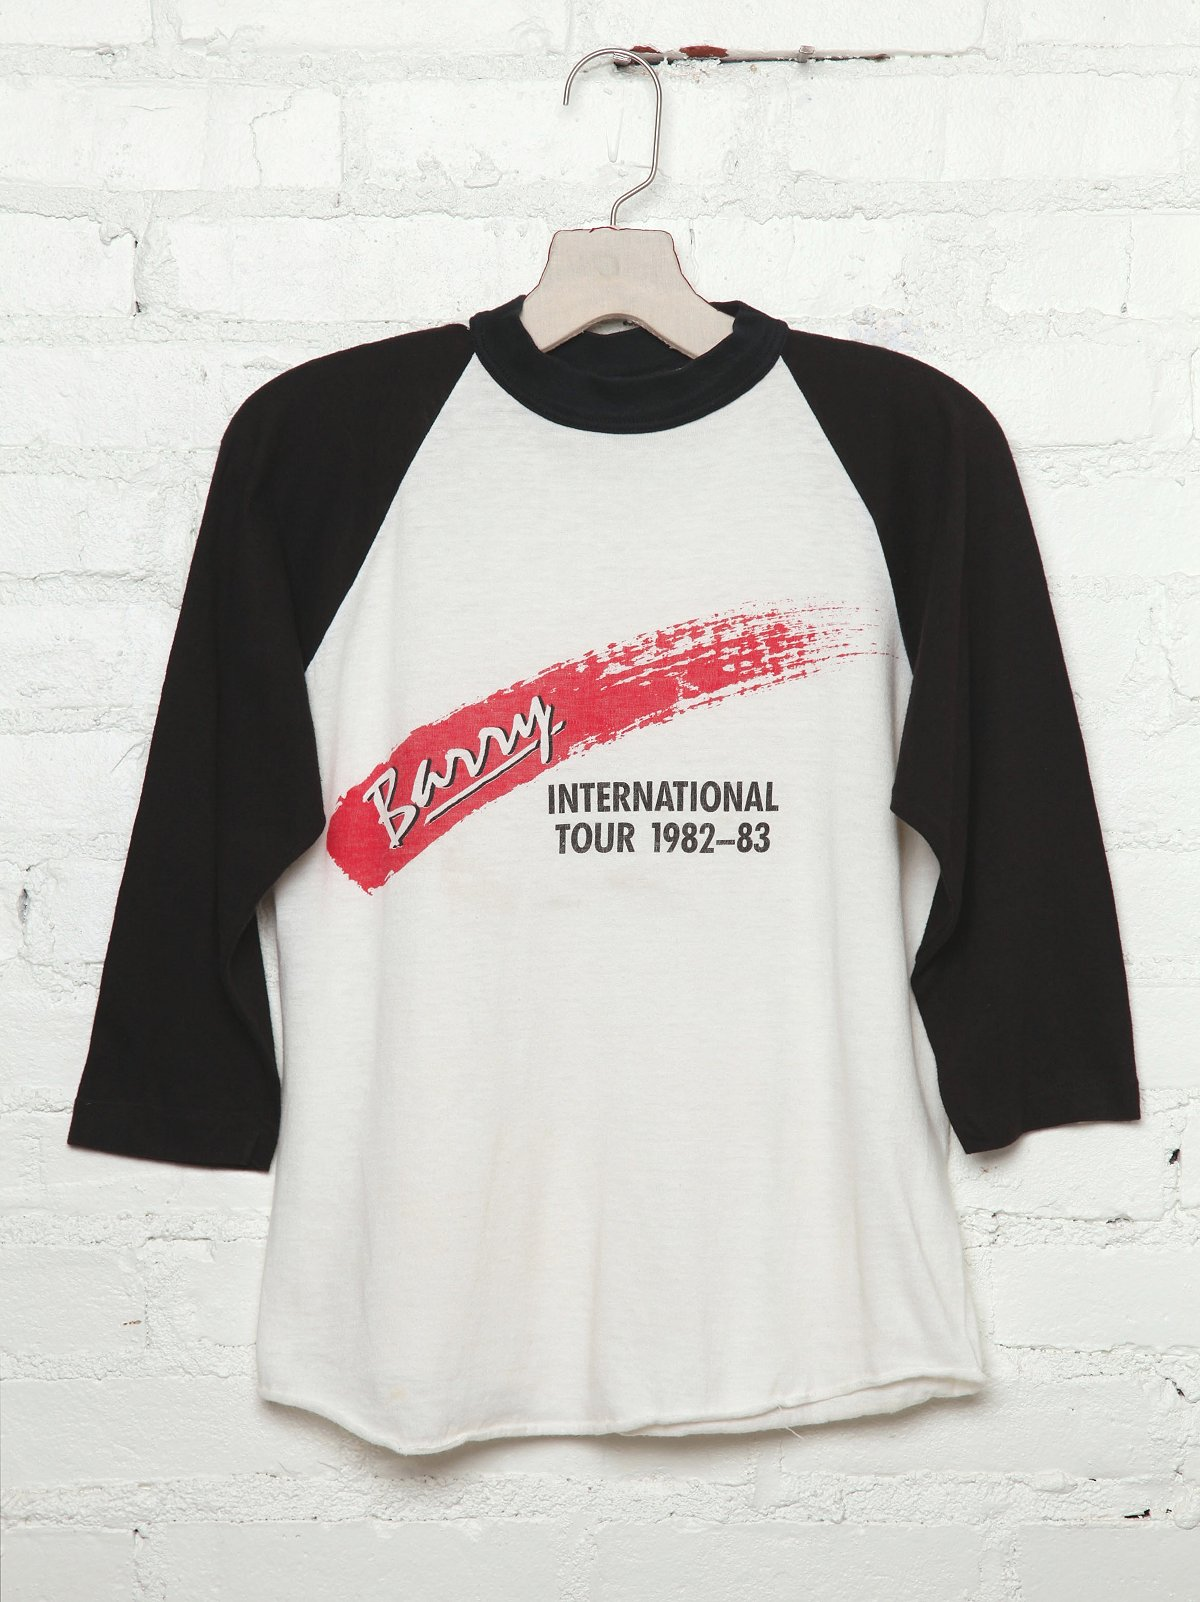 Vintage Barry International 1982-83 Tour Tee